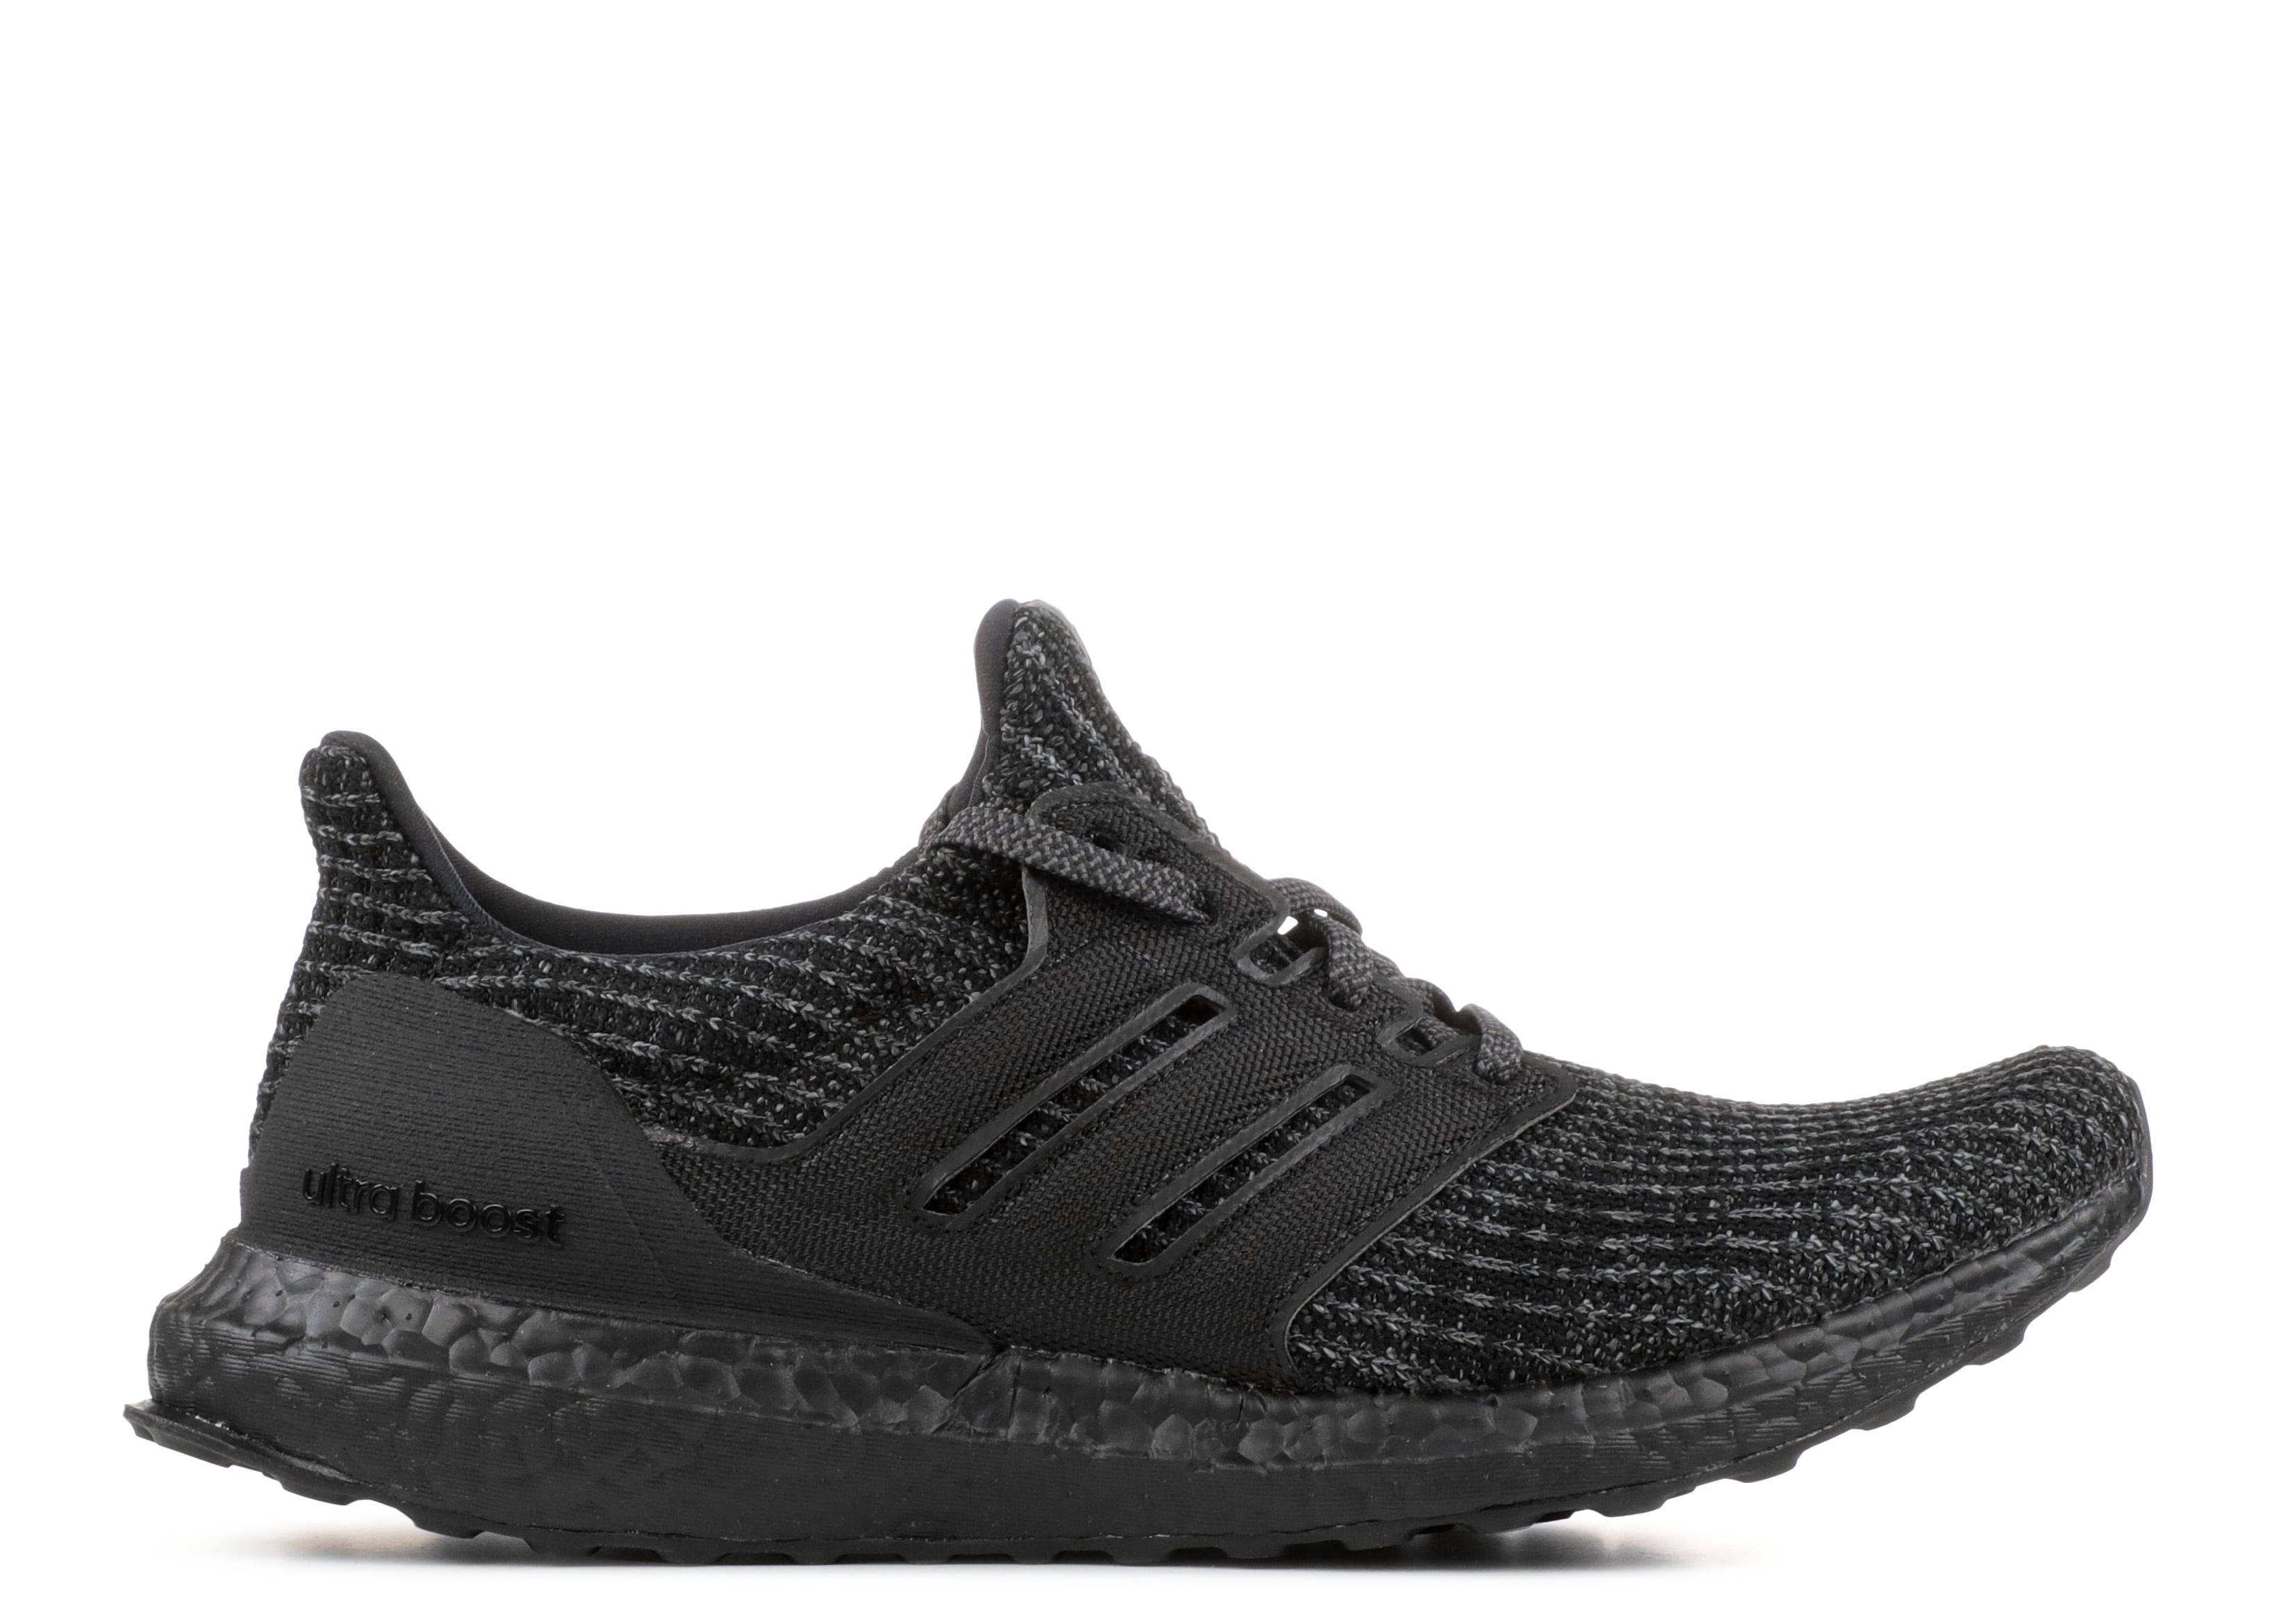 adidas ultra boost 4.0 triple